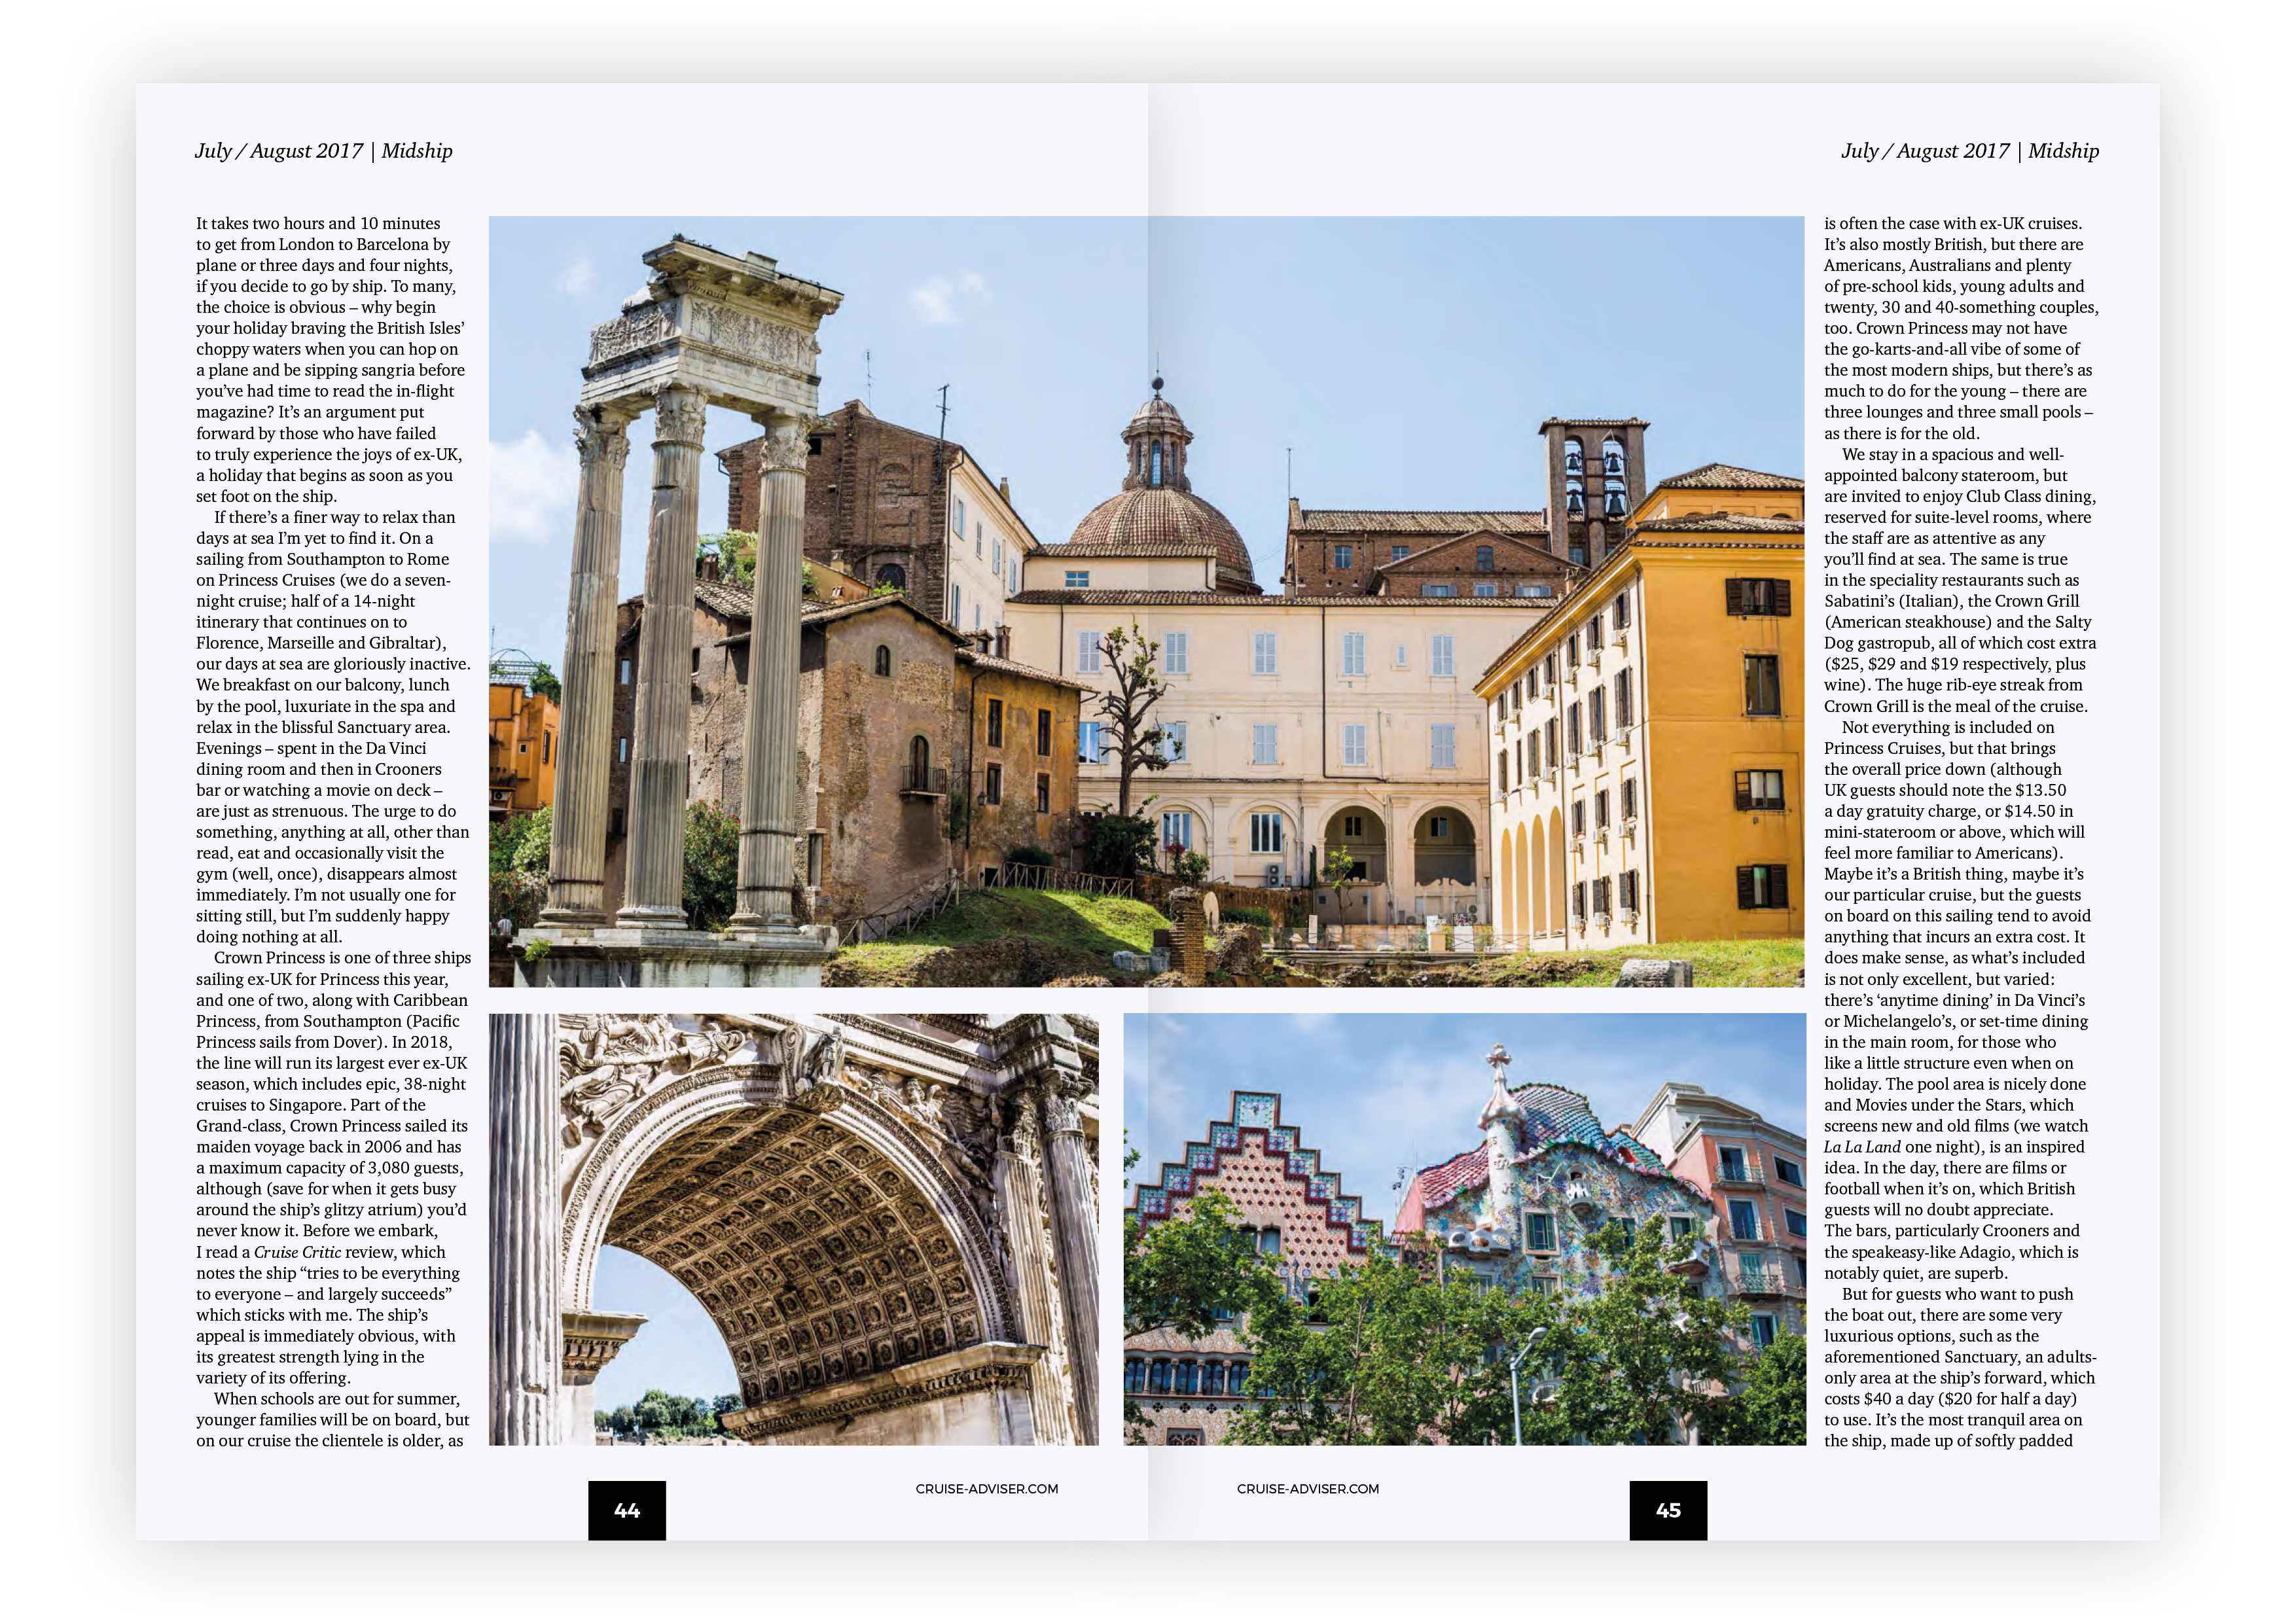 Cruise Adviser -JULY / AUGUST 2017 – Roman Holiday second spread